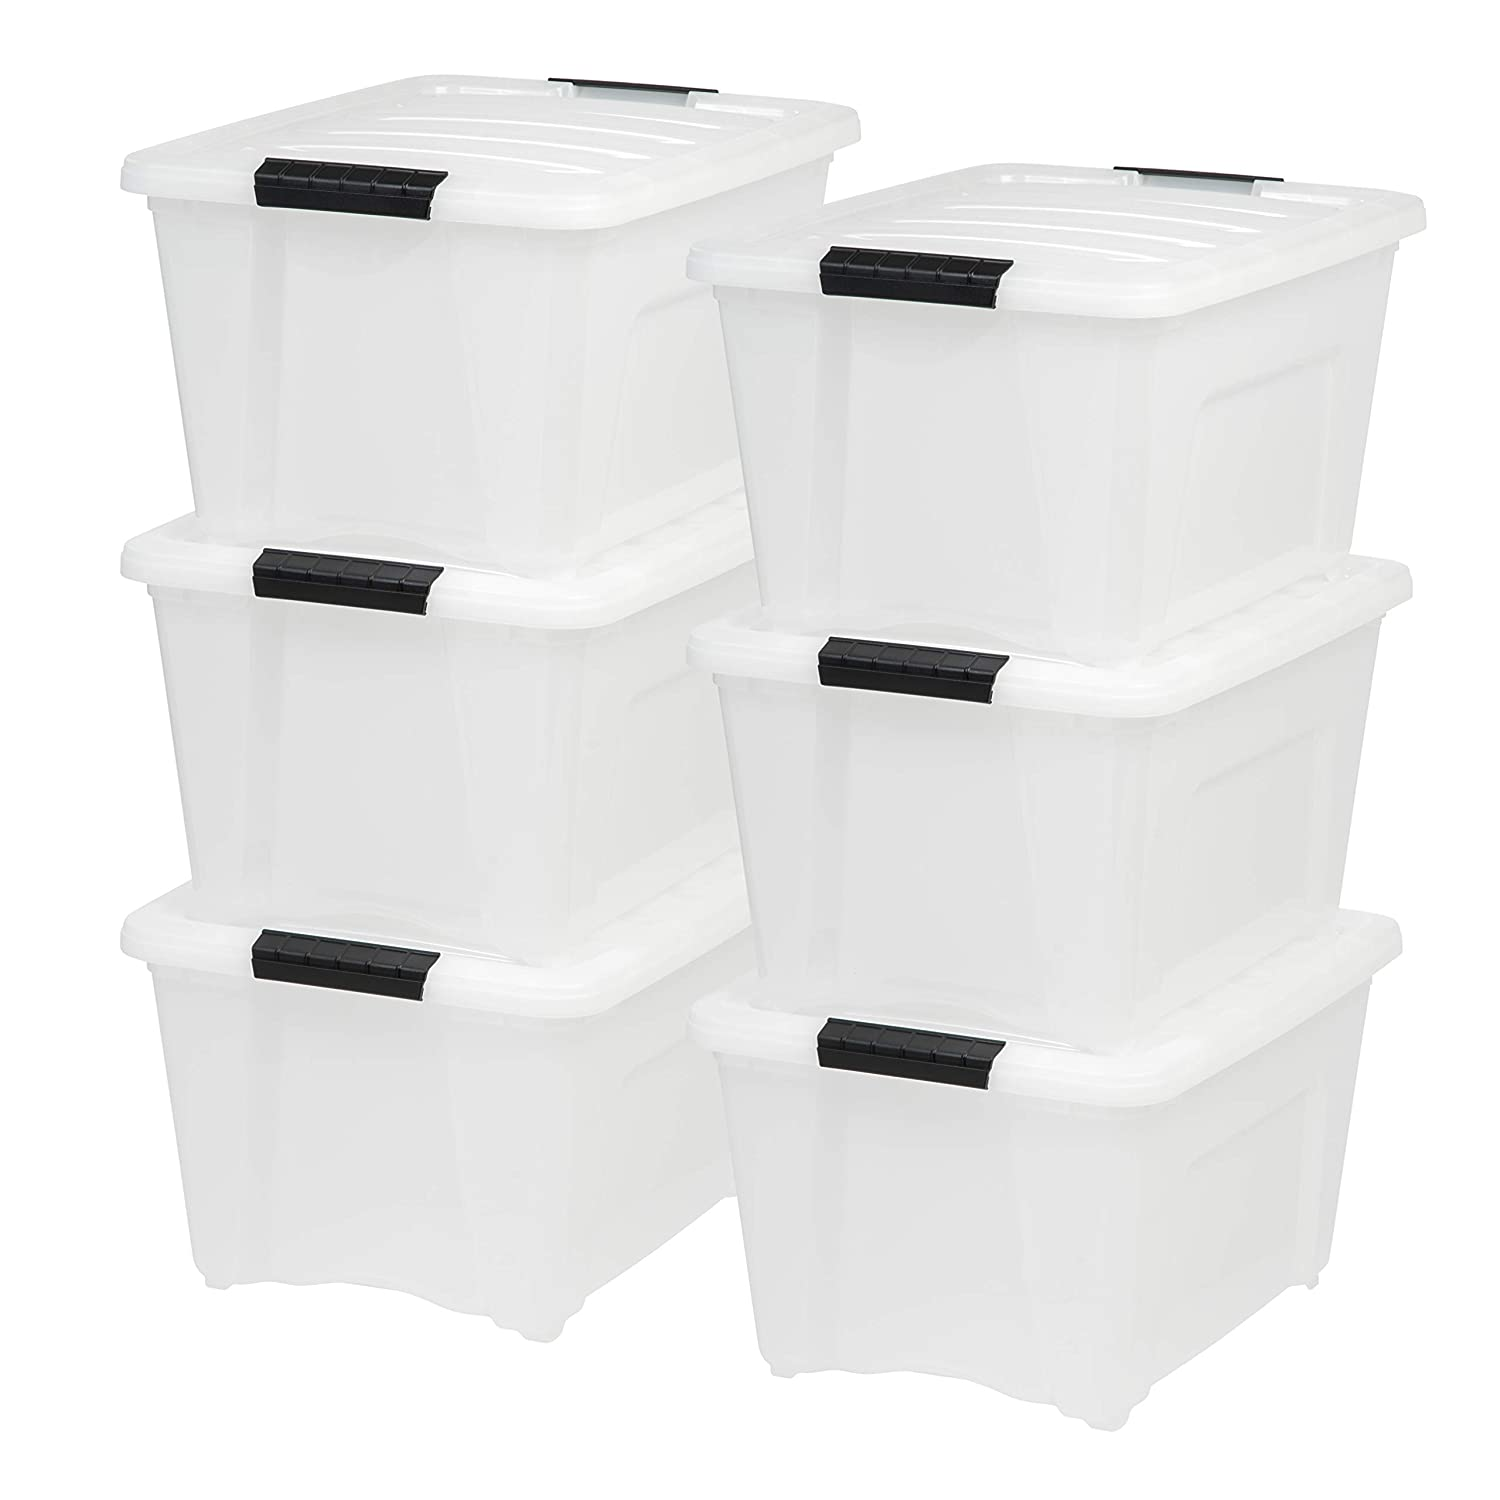 IRIS USA, Inc TB-28 32 Quart Stack & Pull Box, Multi-purpose Storage Bin, 6 Pack, Pearl